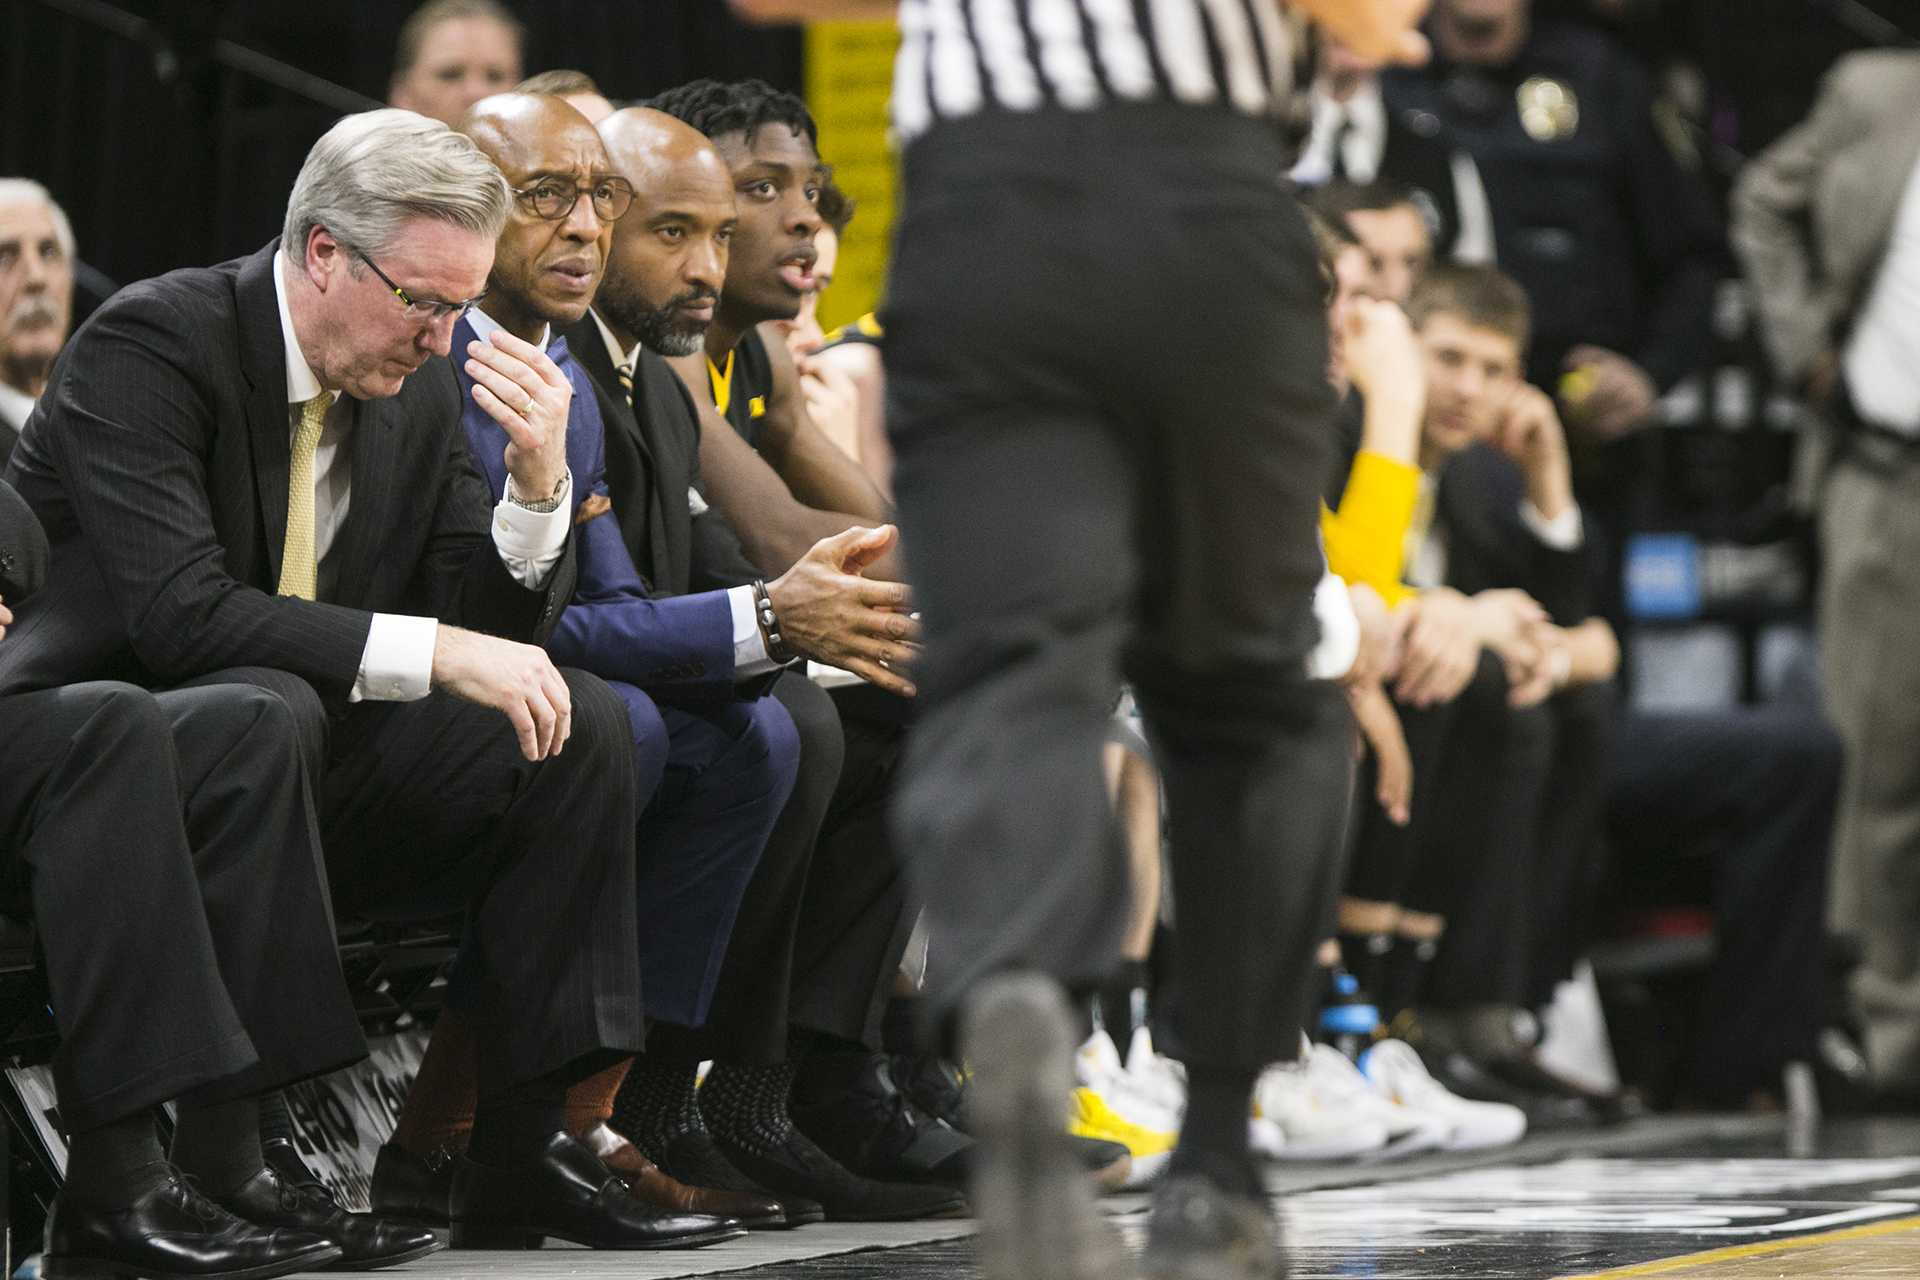 Iowa head coach Fran McCaffery reacts to a play during an Iowa/Ohio State men's basketball game in Carver-Hawkeye Arena on Thursday, Jan. 4, 2018. The Buckeyes defeated the Hawkeyes, 92-81. (Joseph Cress/The Daily Iowan)